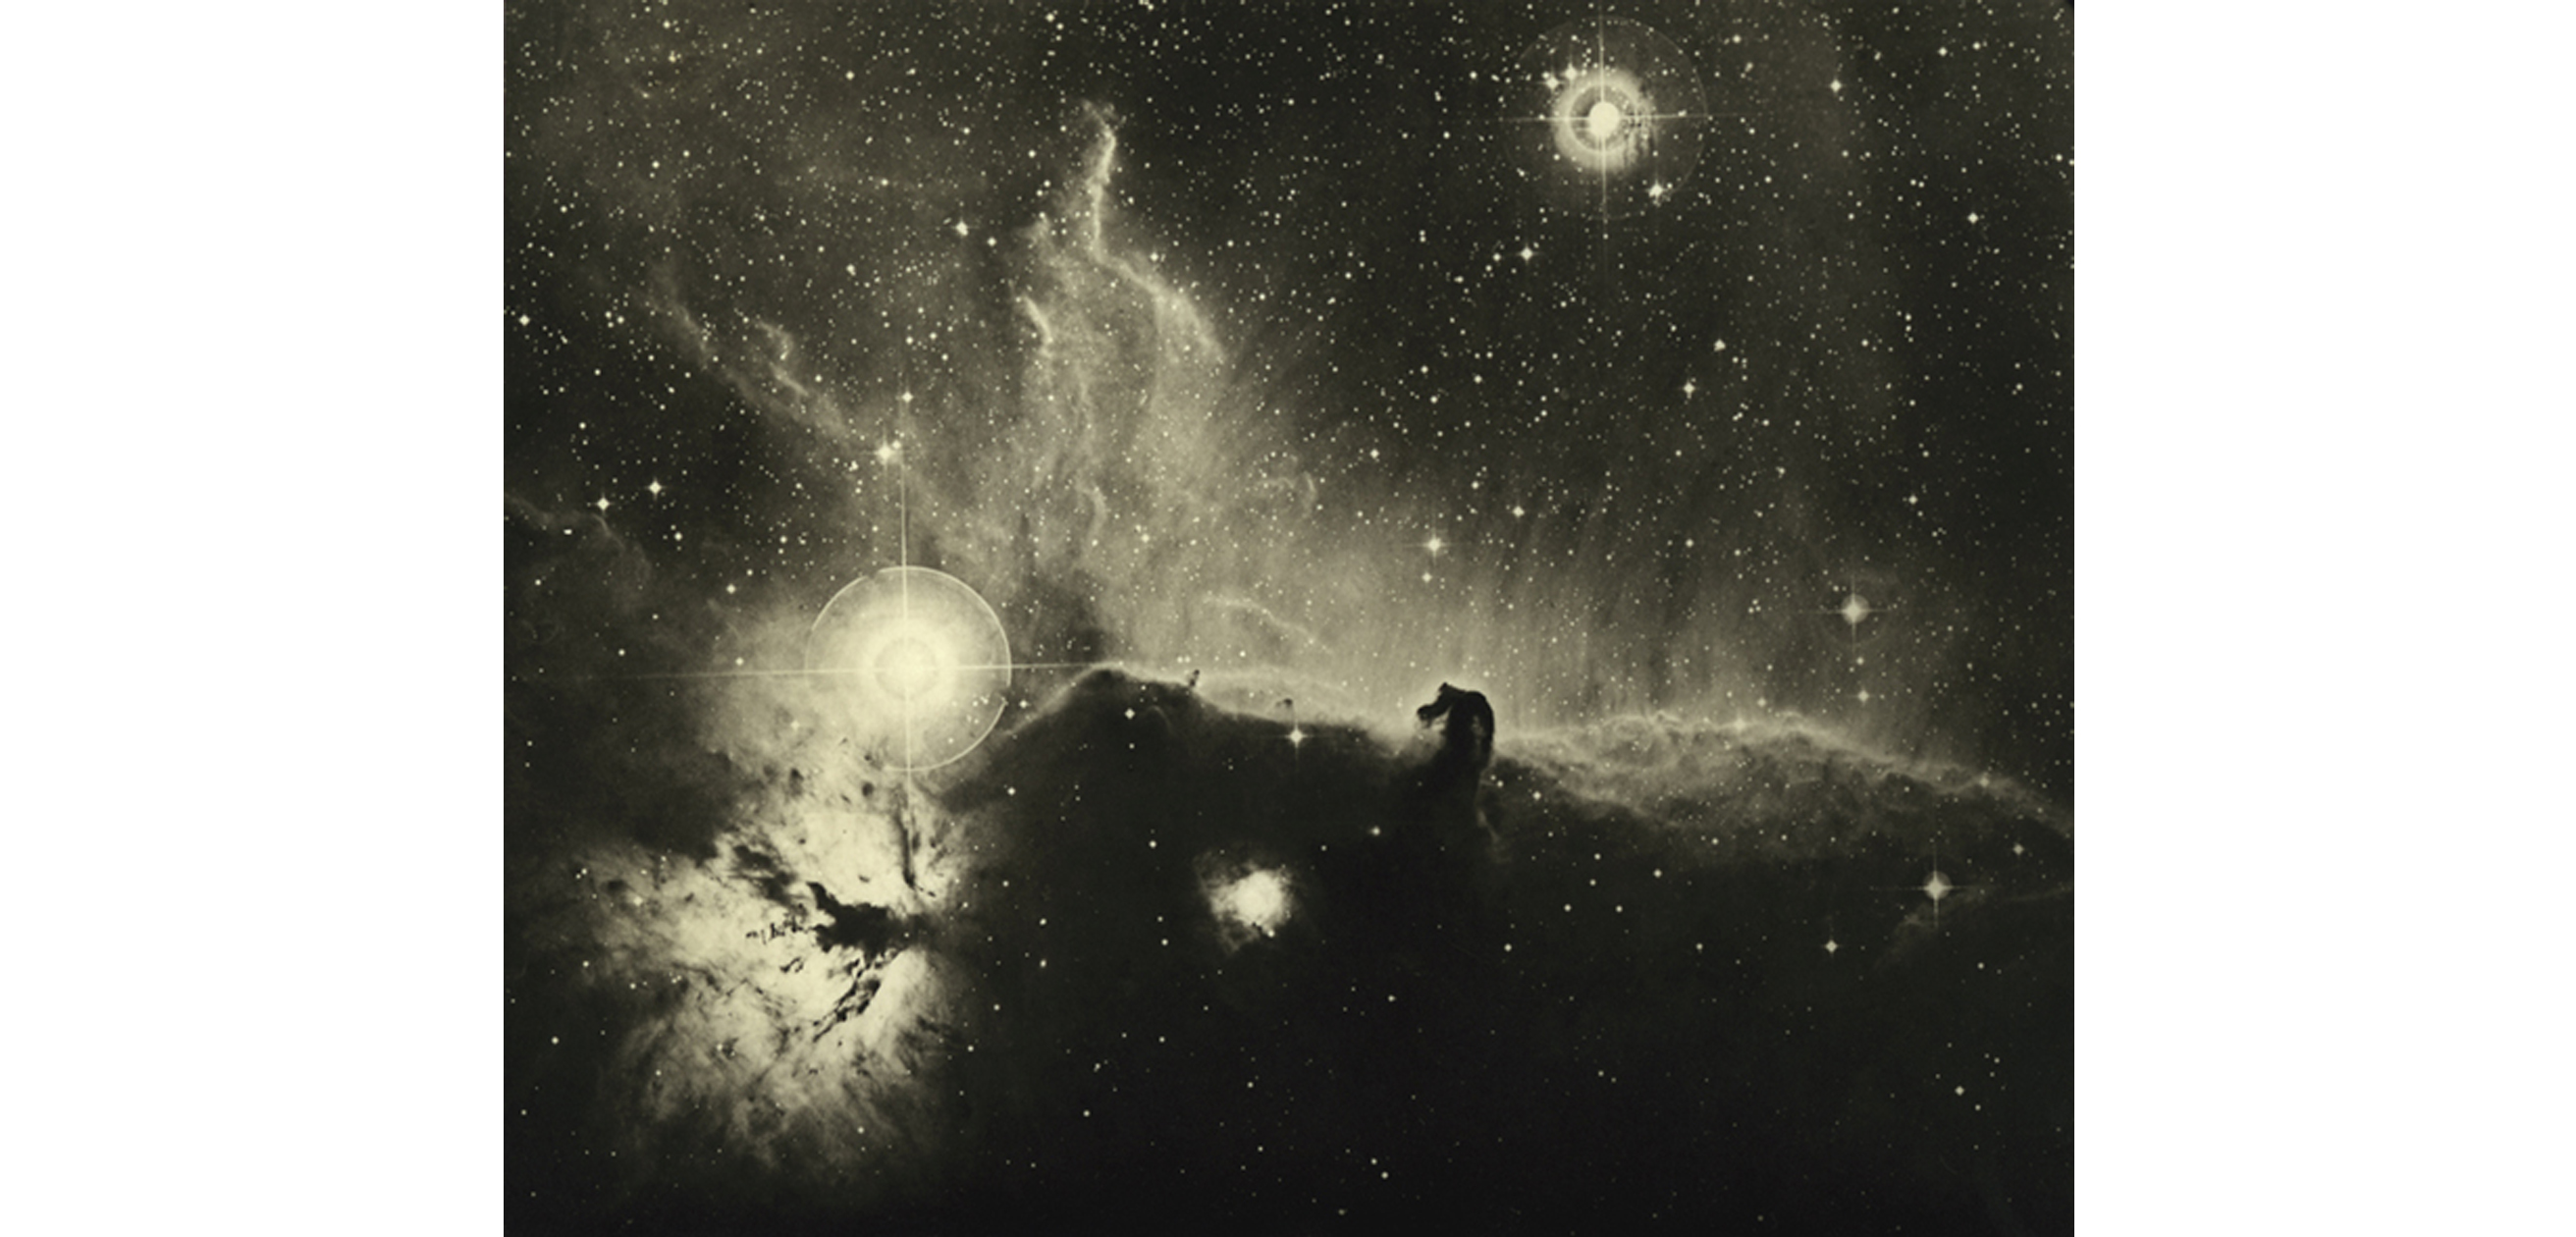 Detail view, David Malin, Dust and Gas Adrift in Orion, undated